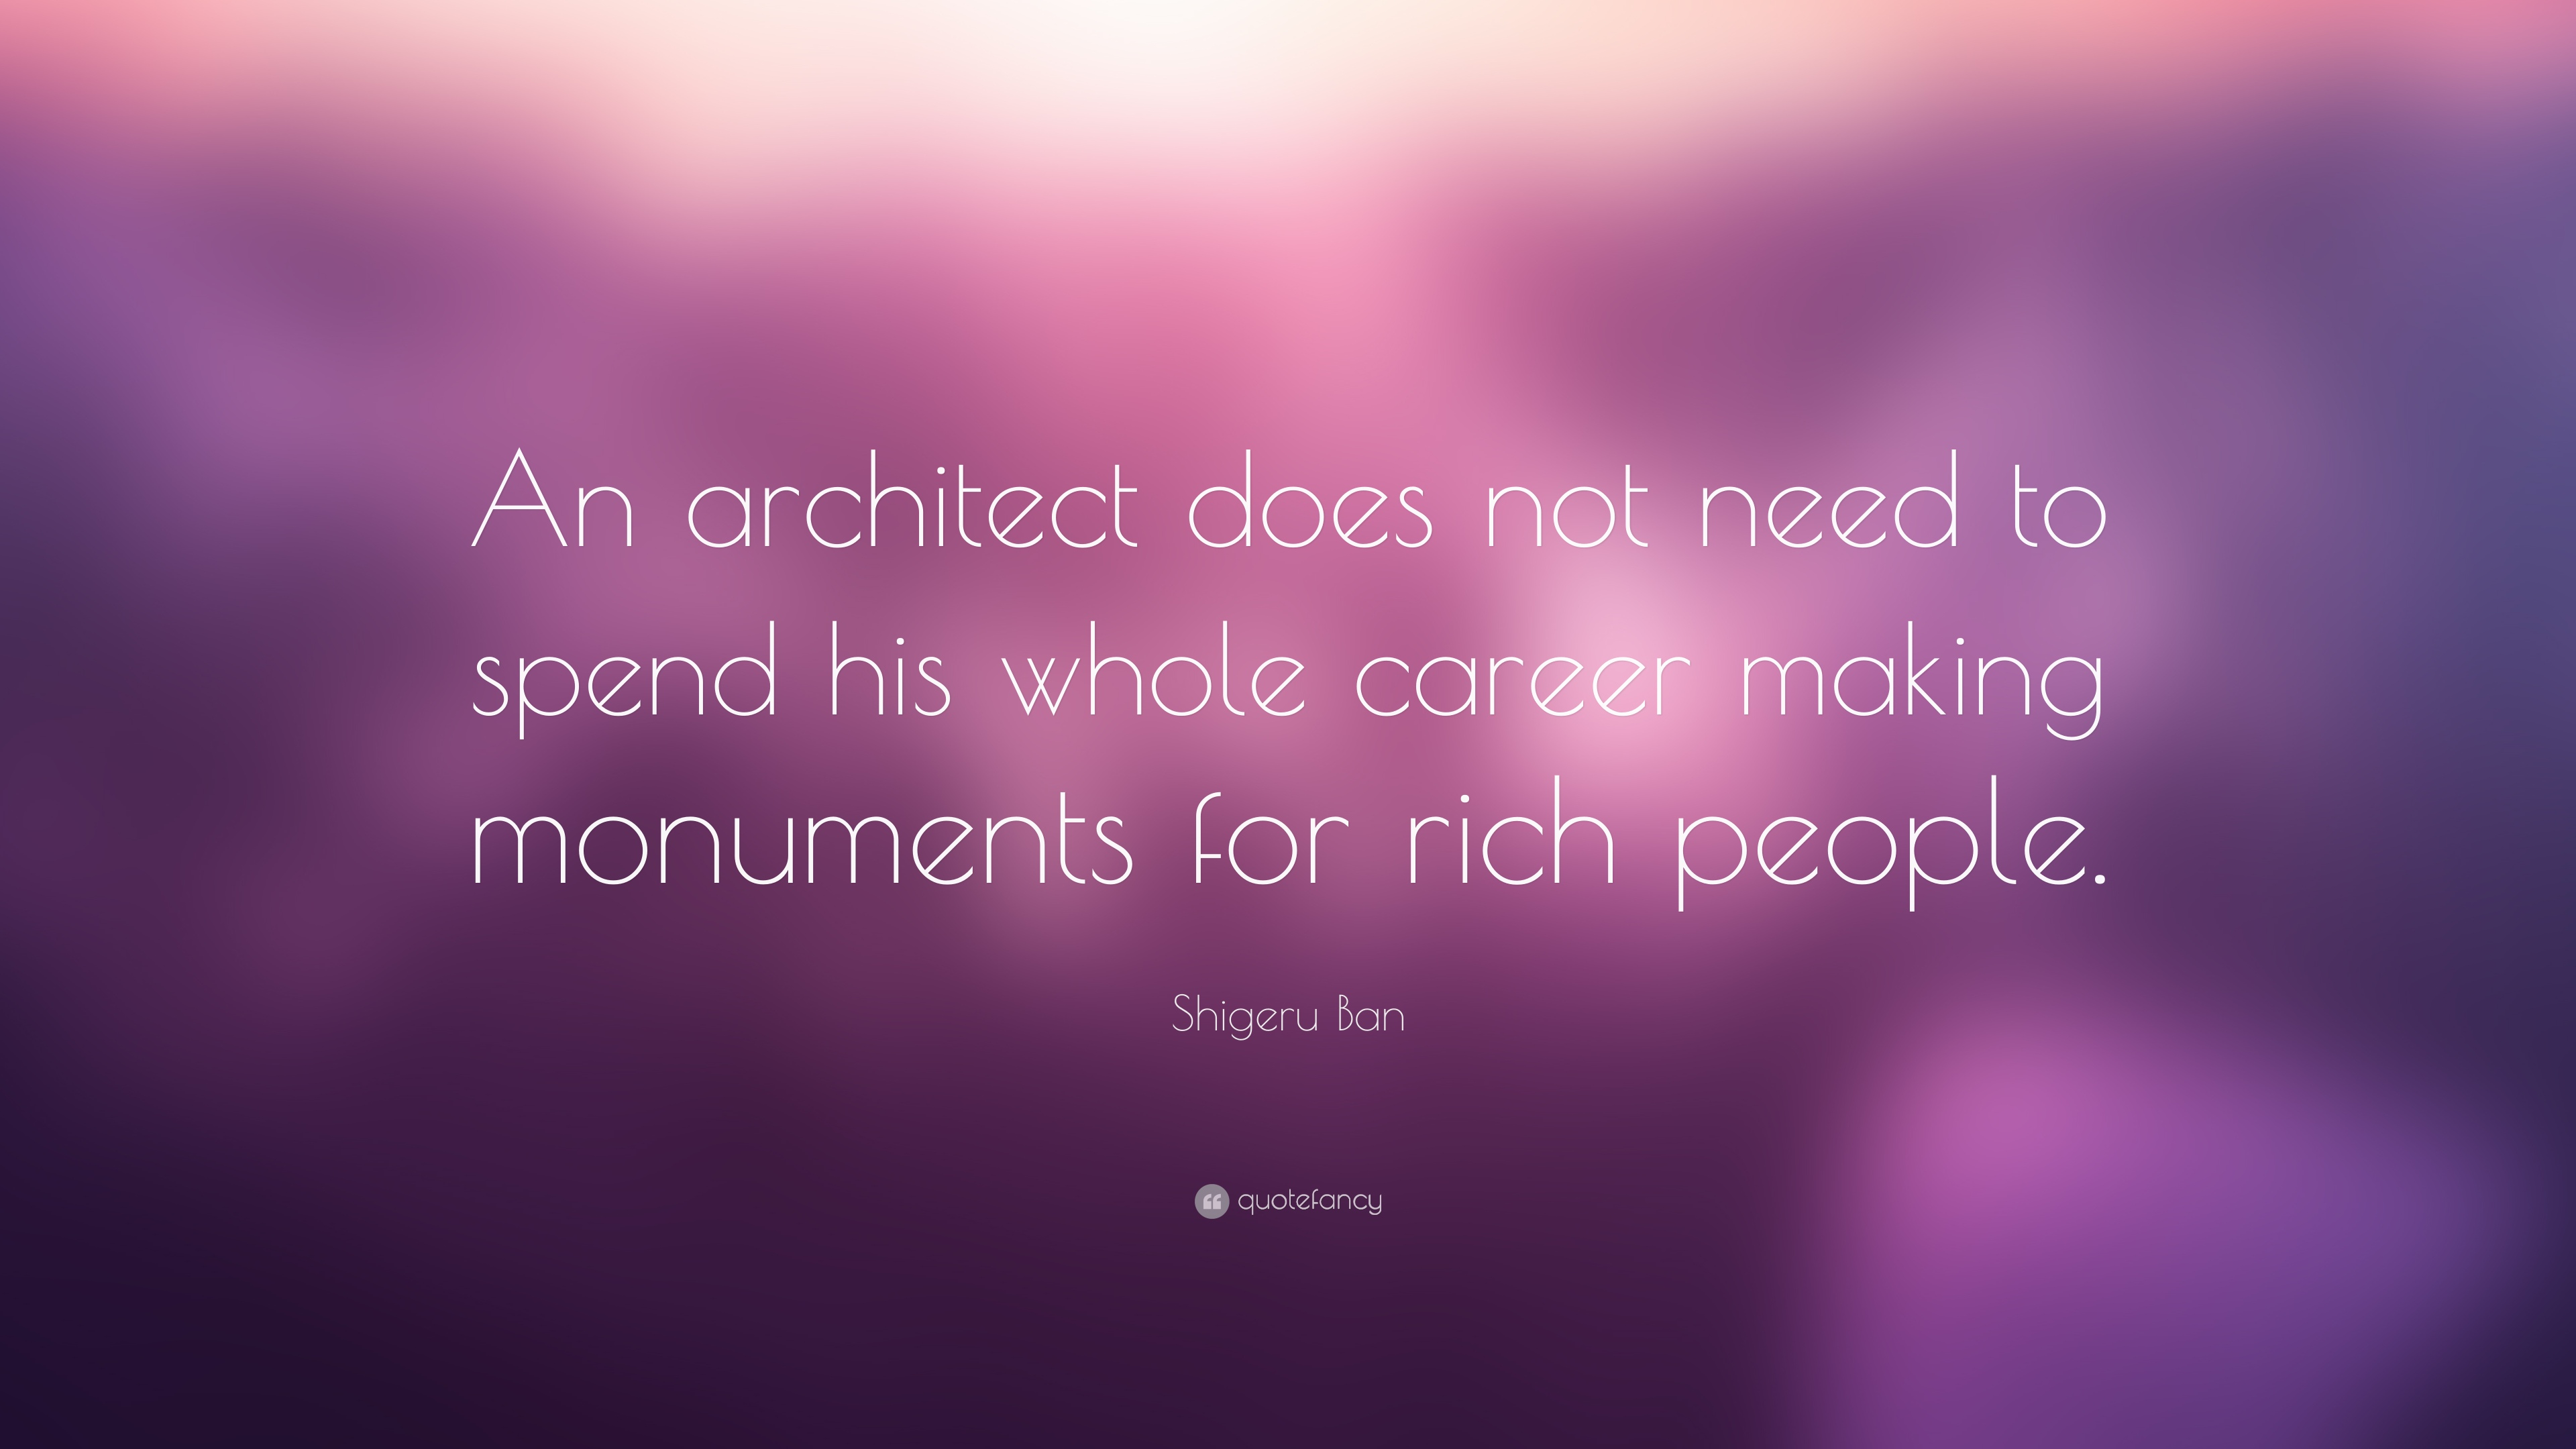 Shigeru ban quotes 6 wallpapers quotefancy for Do i need an architect